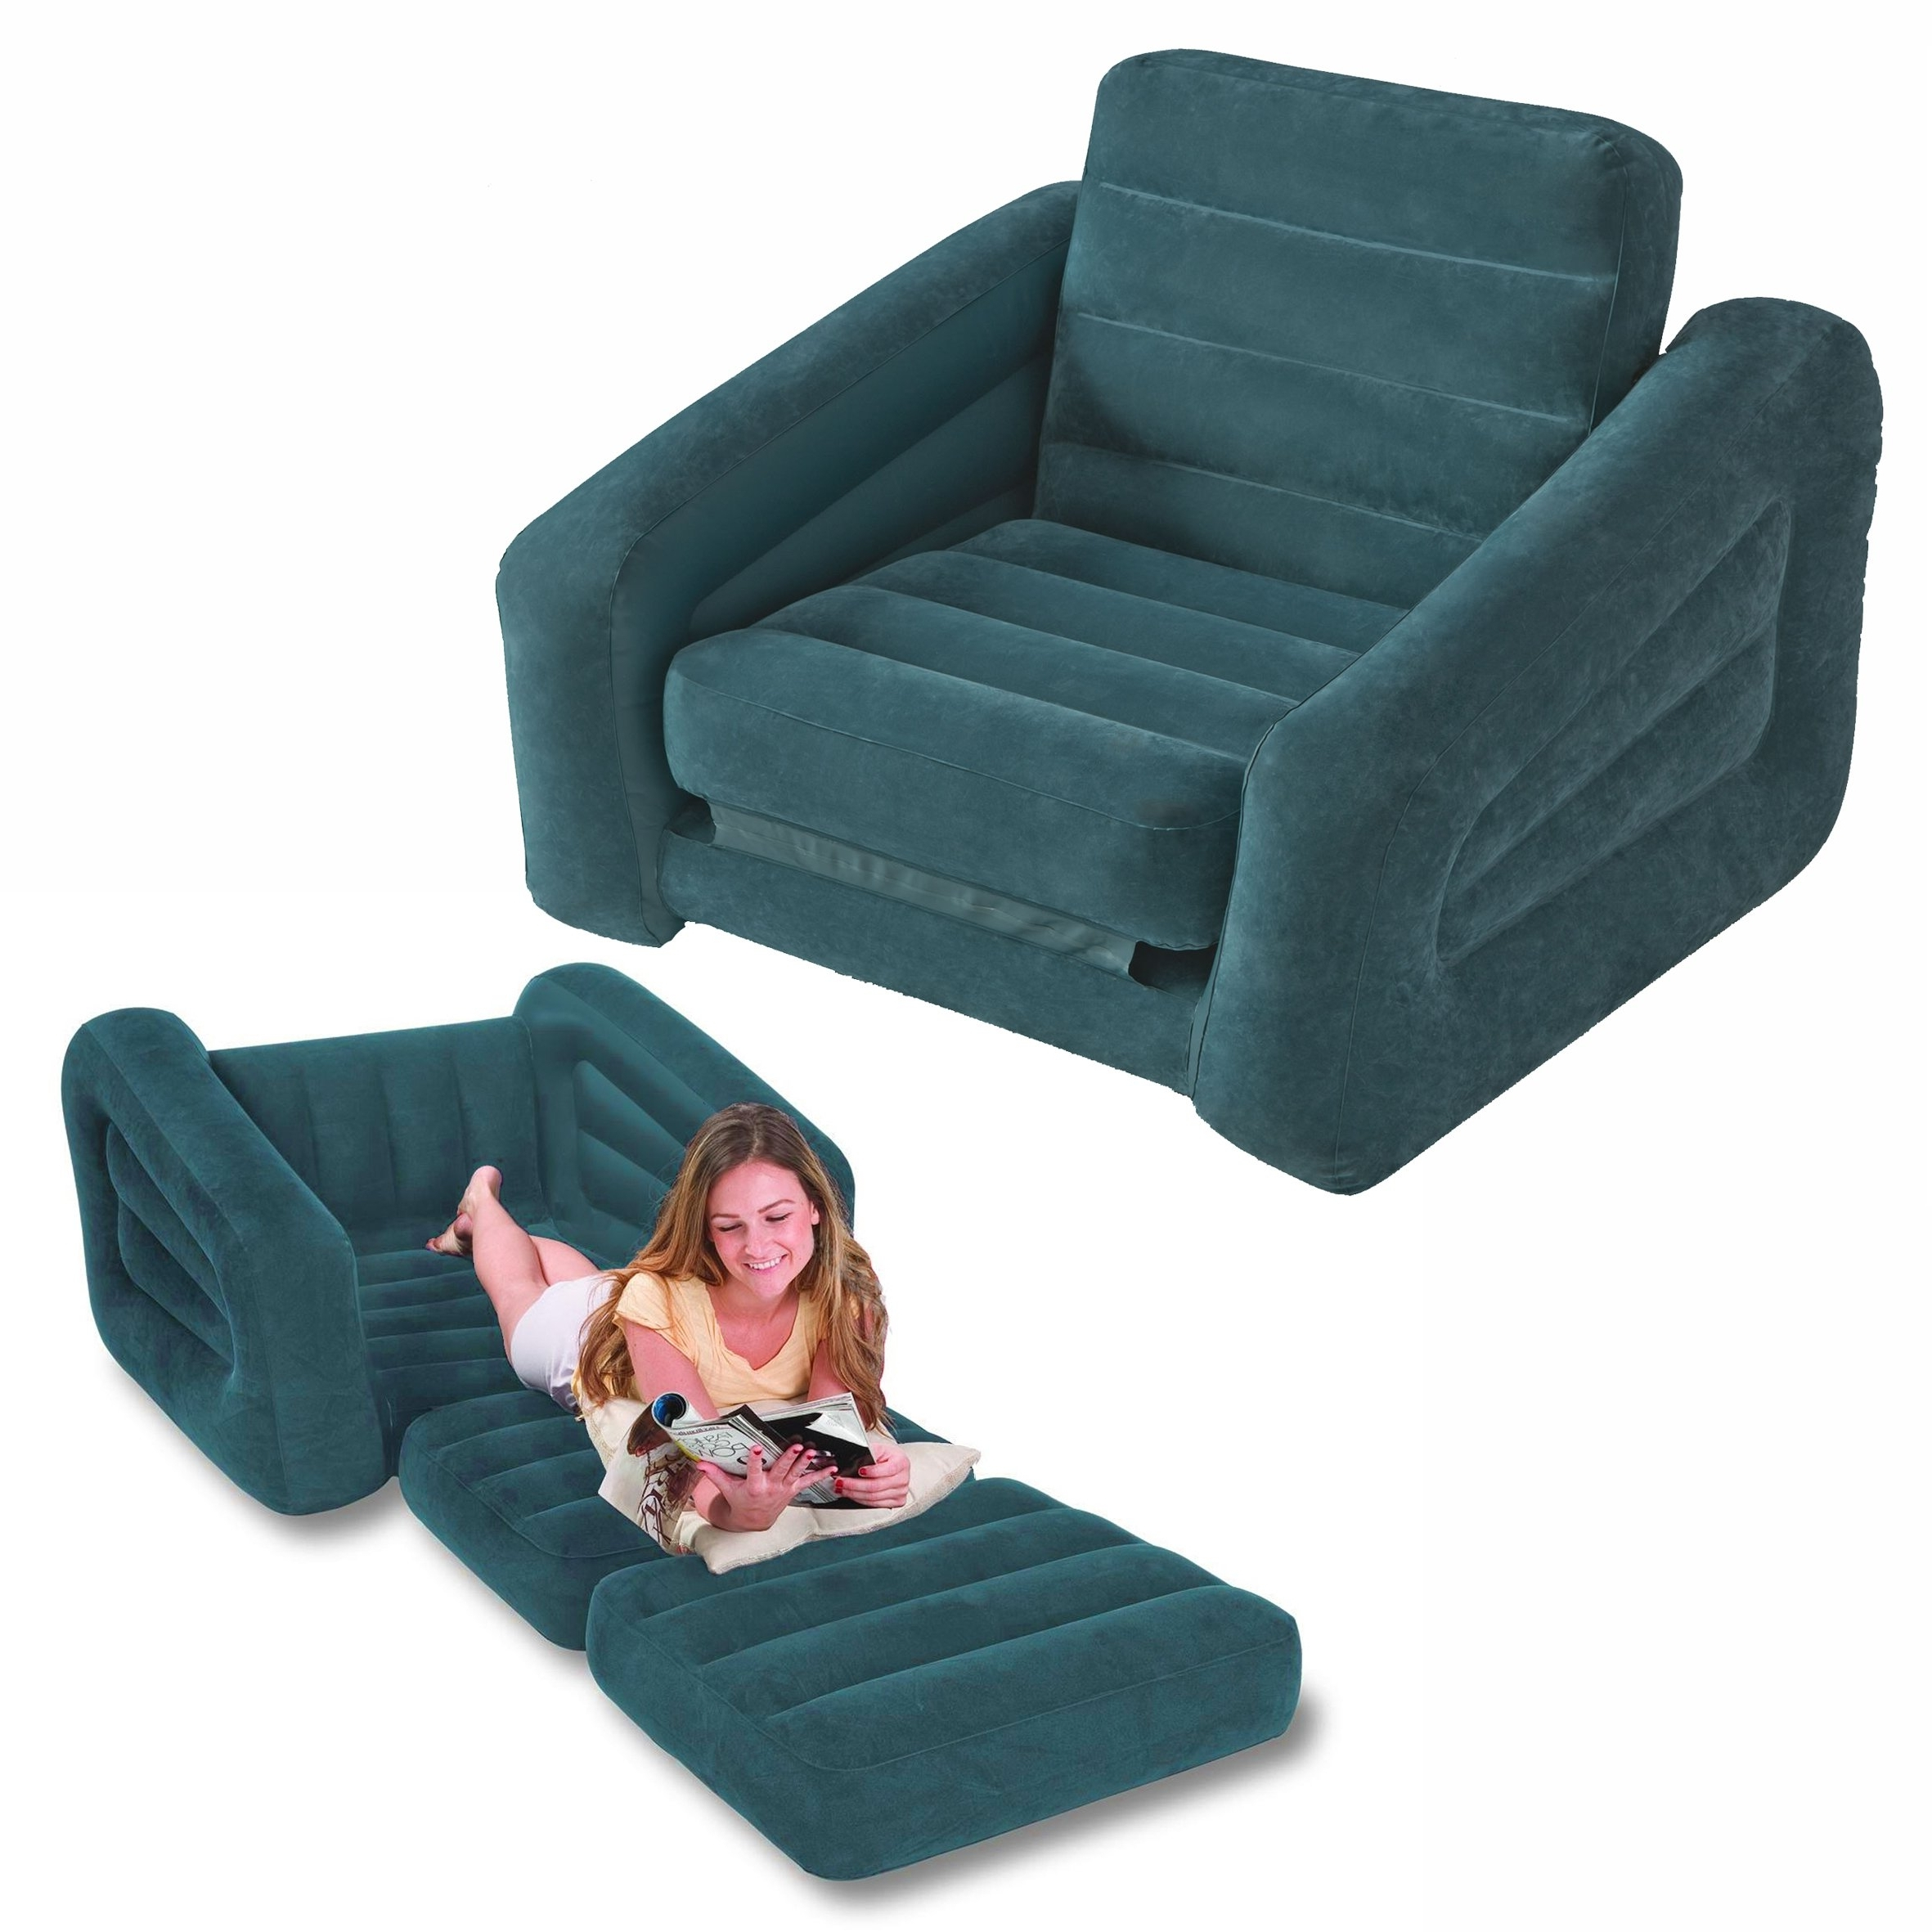 Intex One Person Inflatable Pull Out Chair Bed Sofa Bed #68565 Regarding Most Recently Released Inflatable Sofas And Chairs (View 12 of 20)